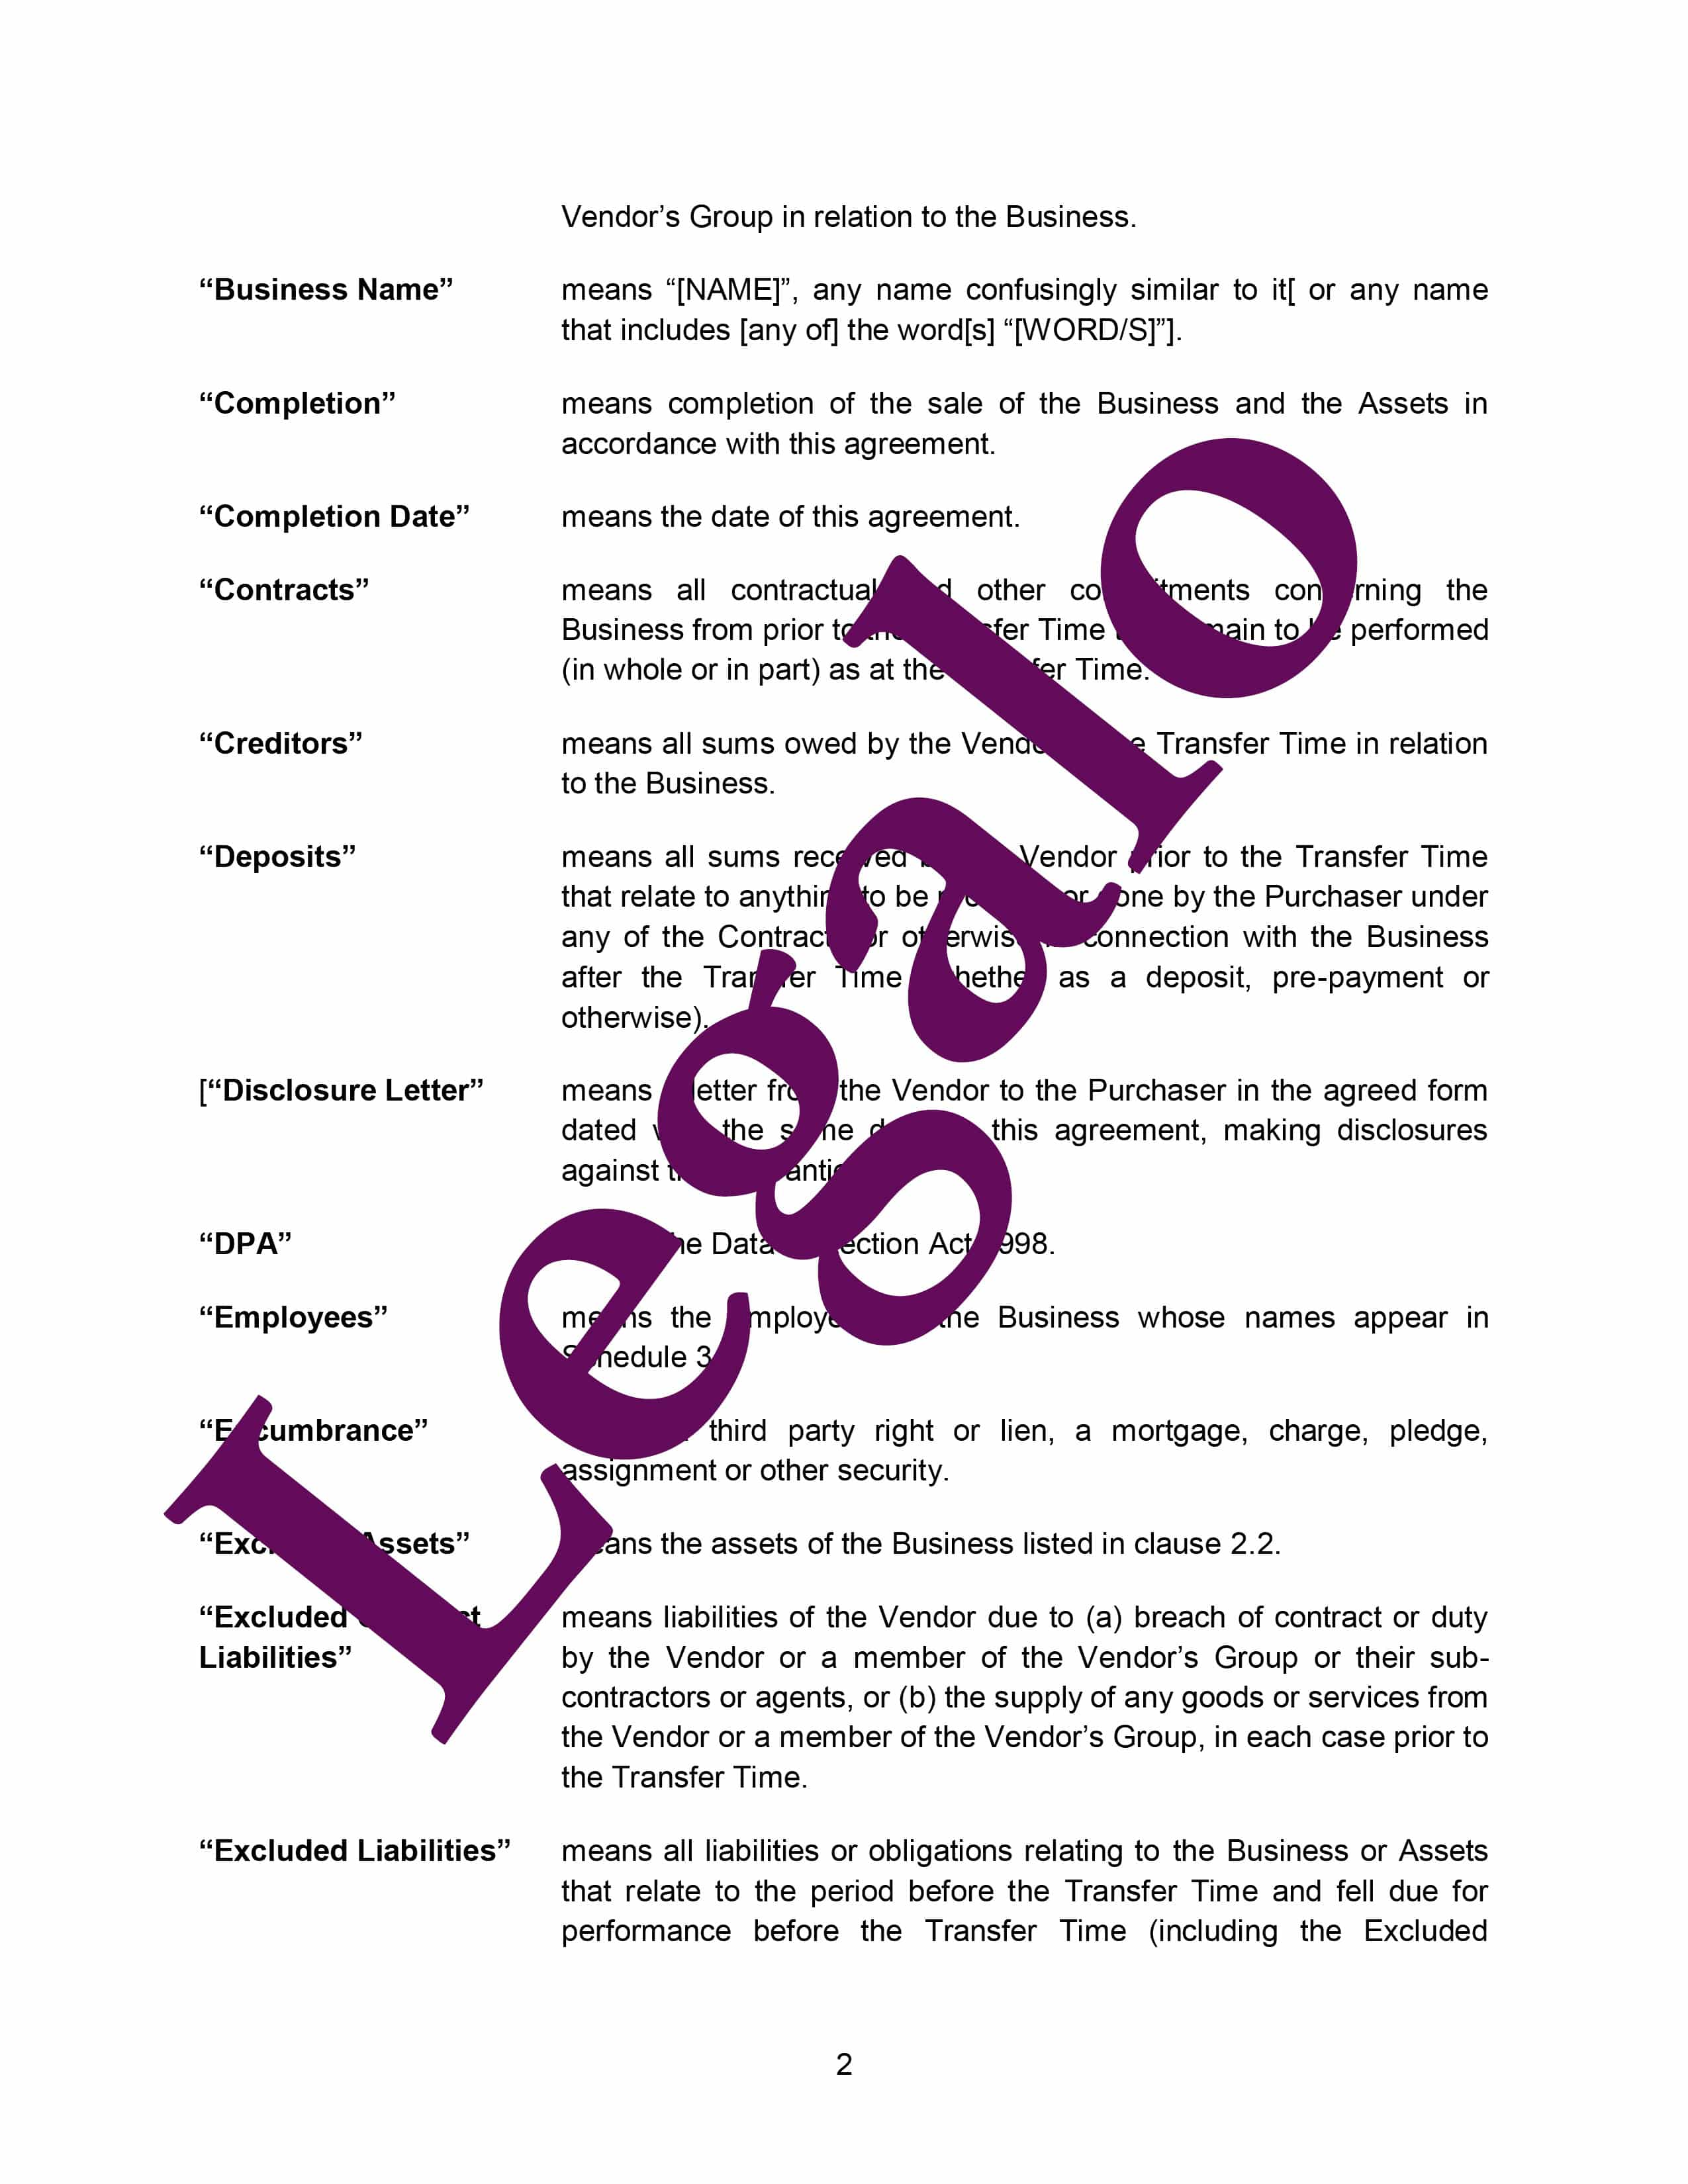 Business transfer agreement preview image page 2